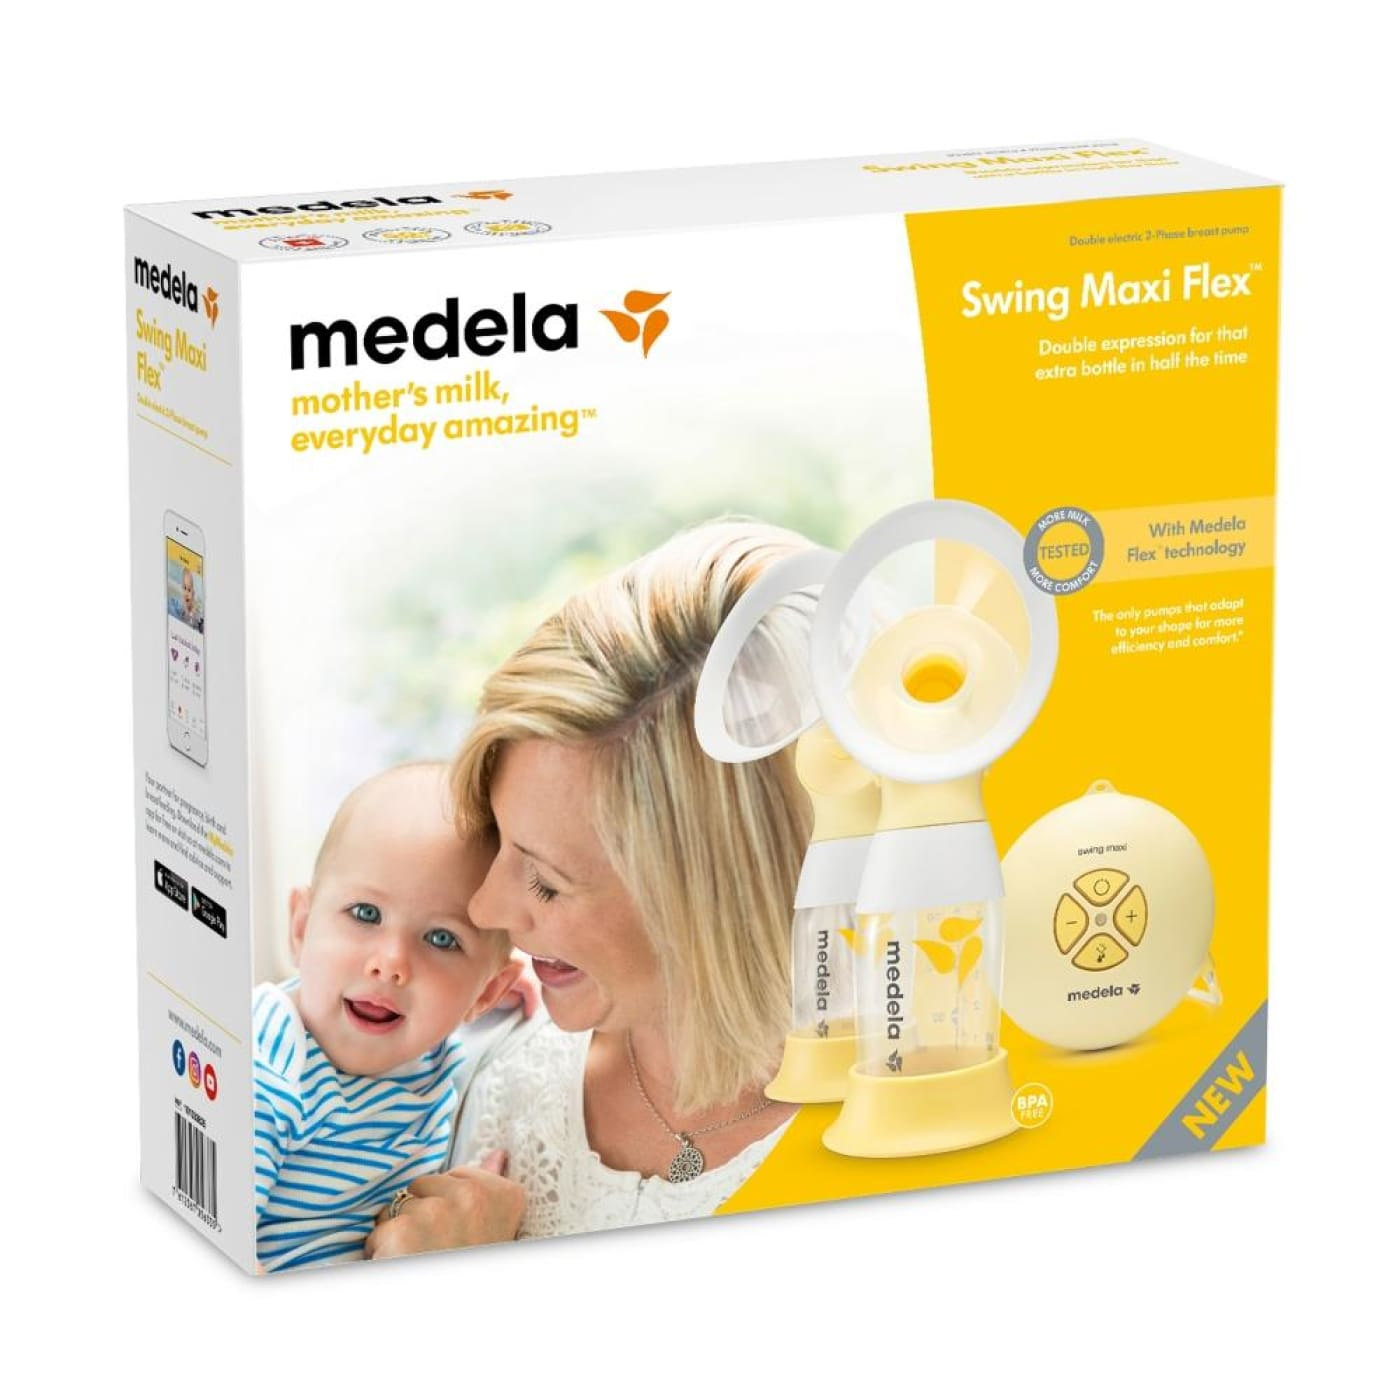 Medela Swing Maxi Flex Double Electric Breastpump (2-phase) - NURSING & FEEDING - BREAST PUMPS/ACCESSORIES